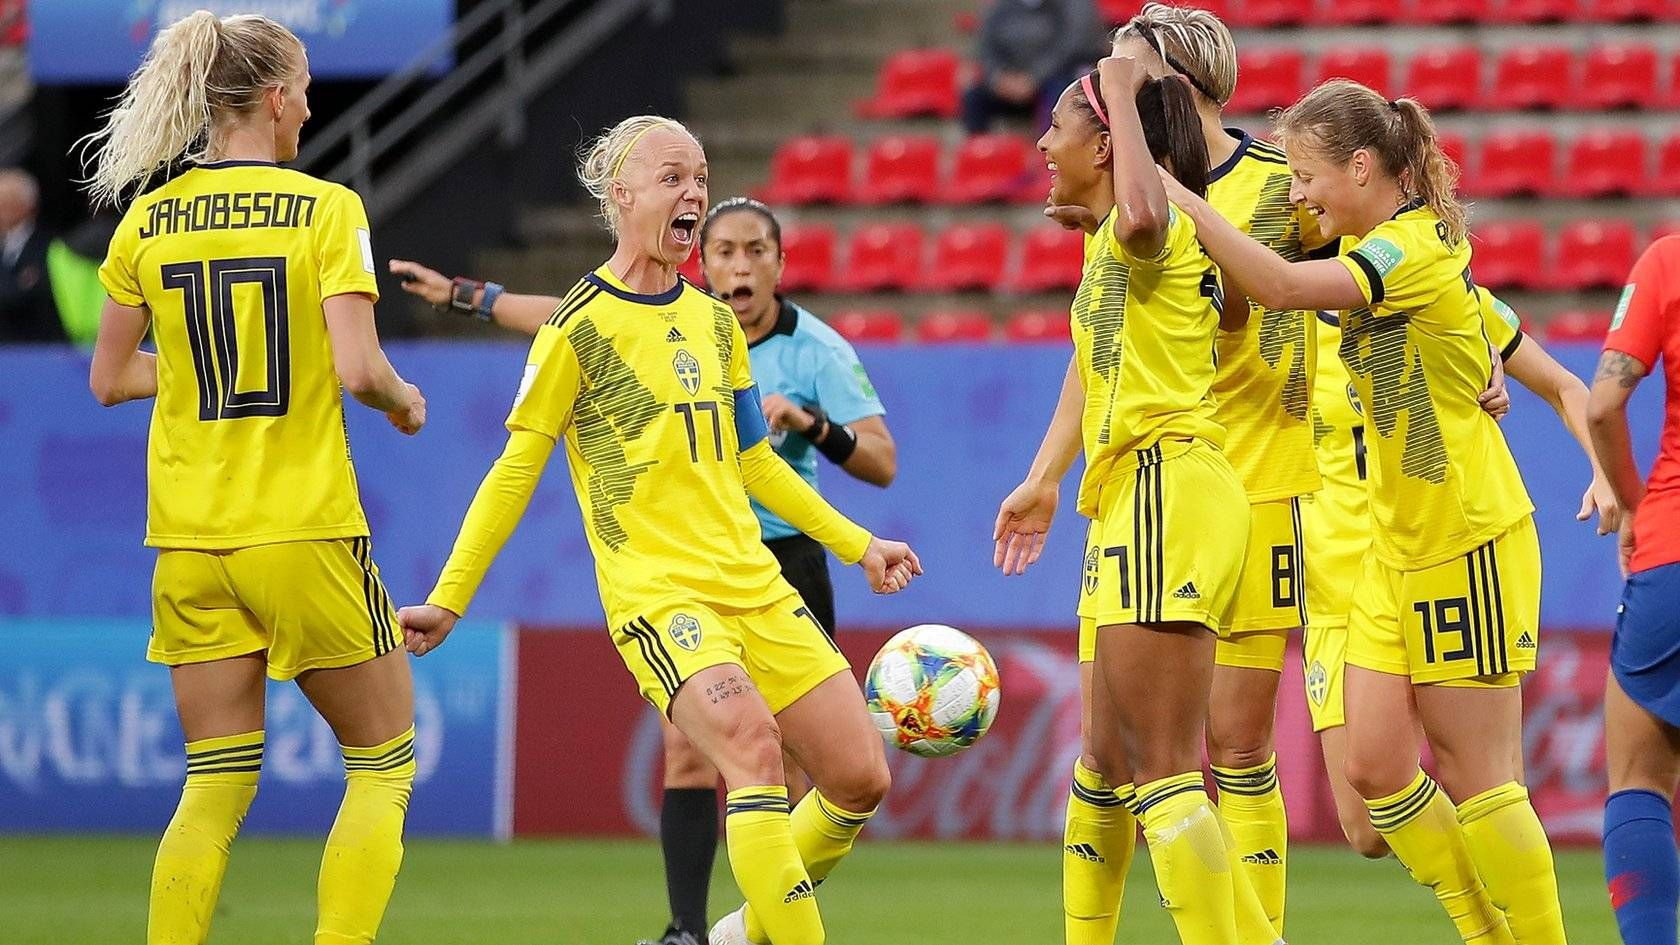 Fifa Women S World Cup Late Goals Seal Sweden Win Over Chile After Rain Delay Fifa Women S World Cup Fifa Sweden Soccer